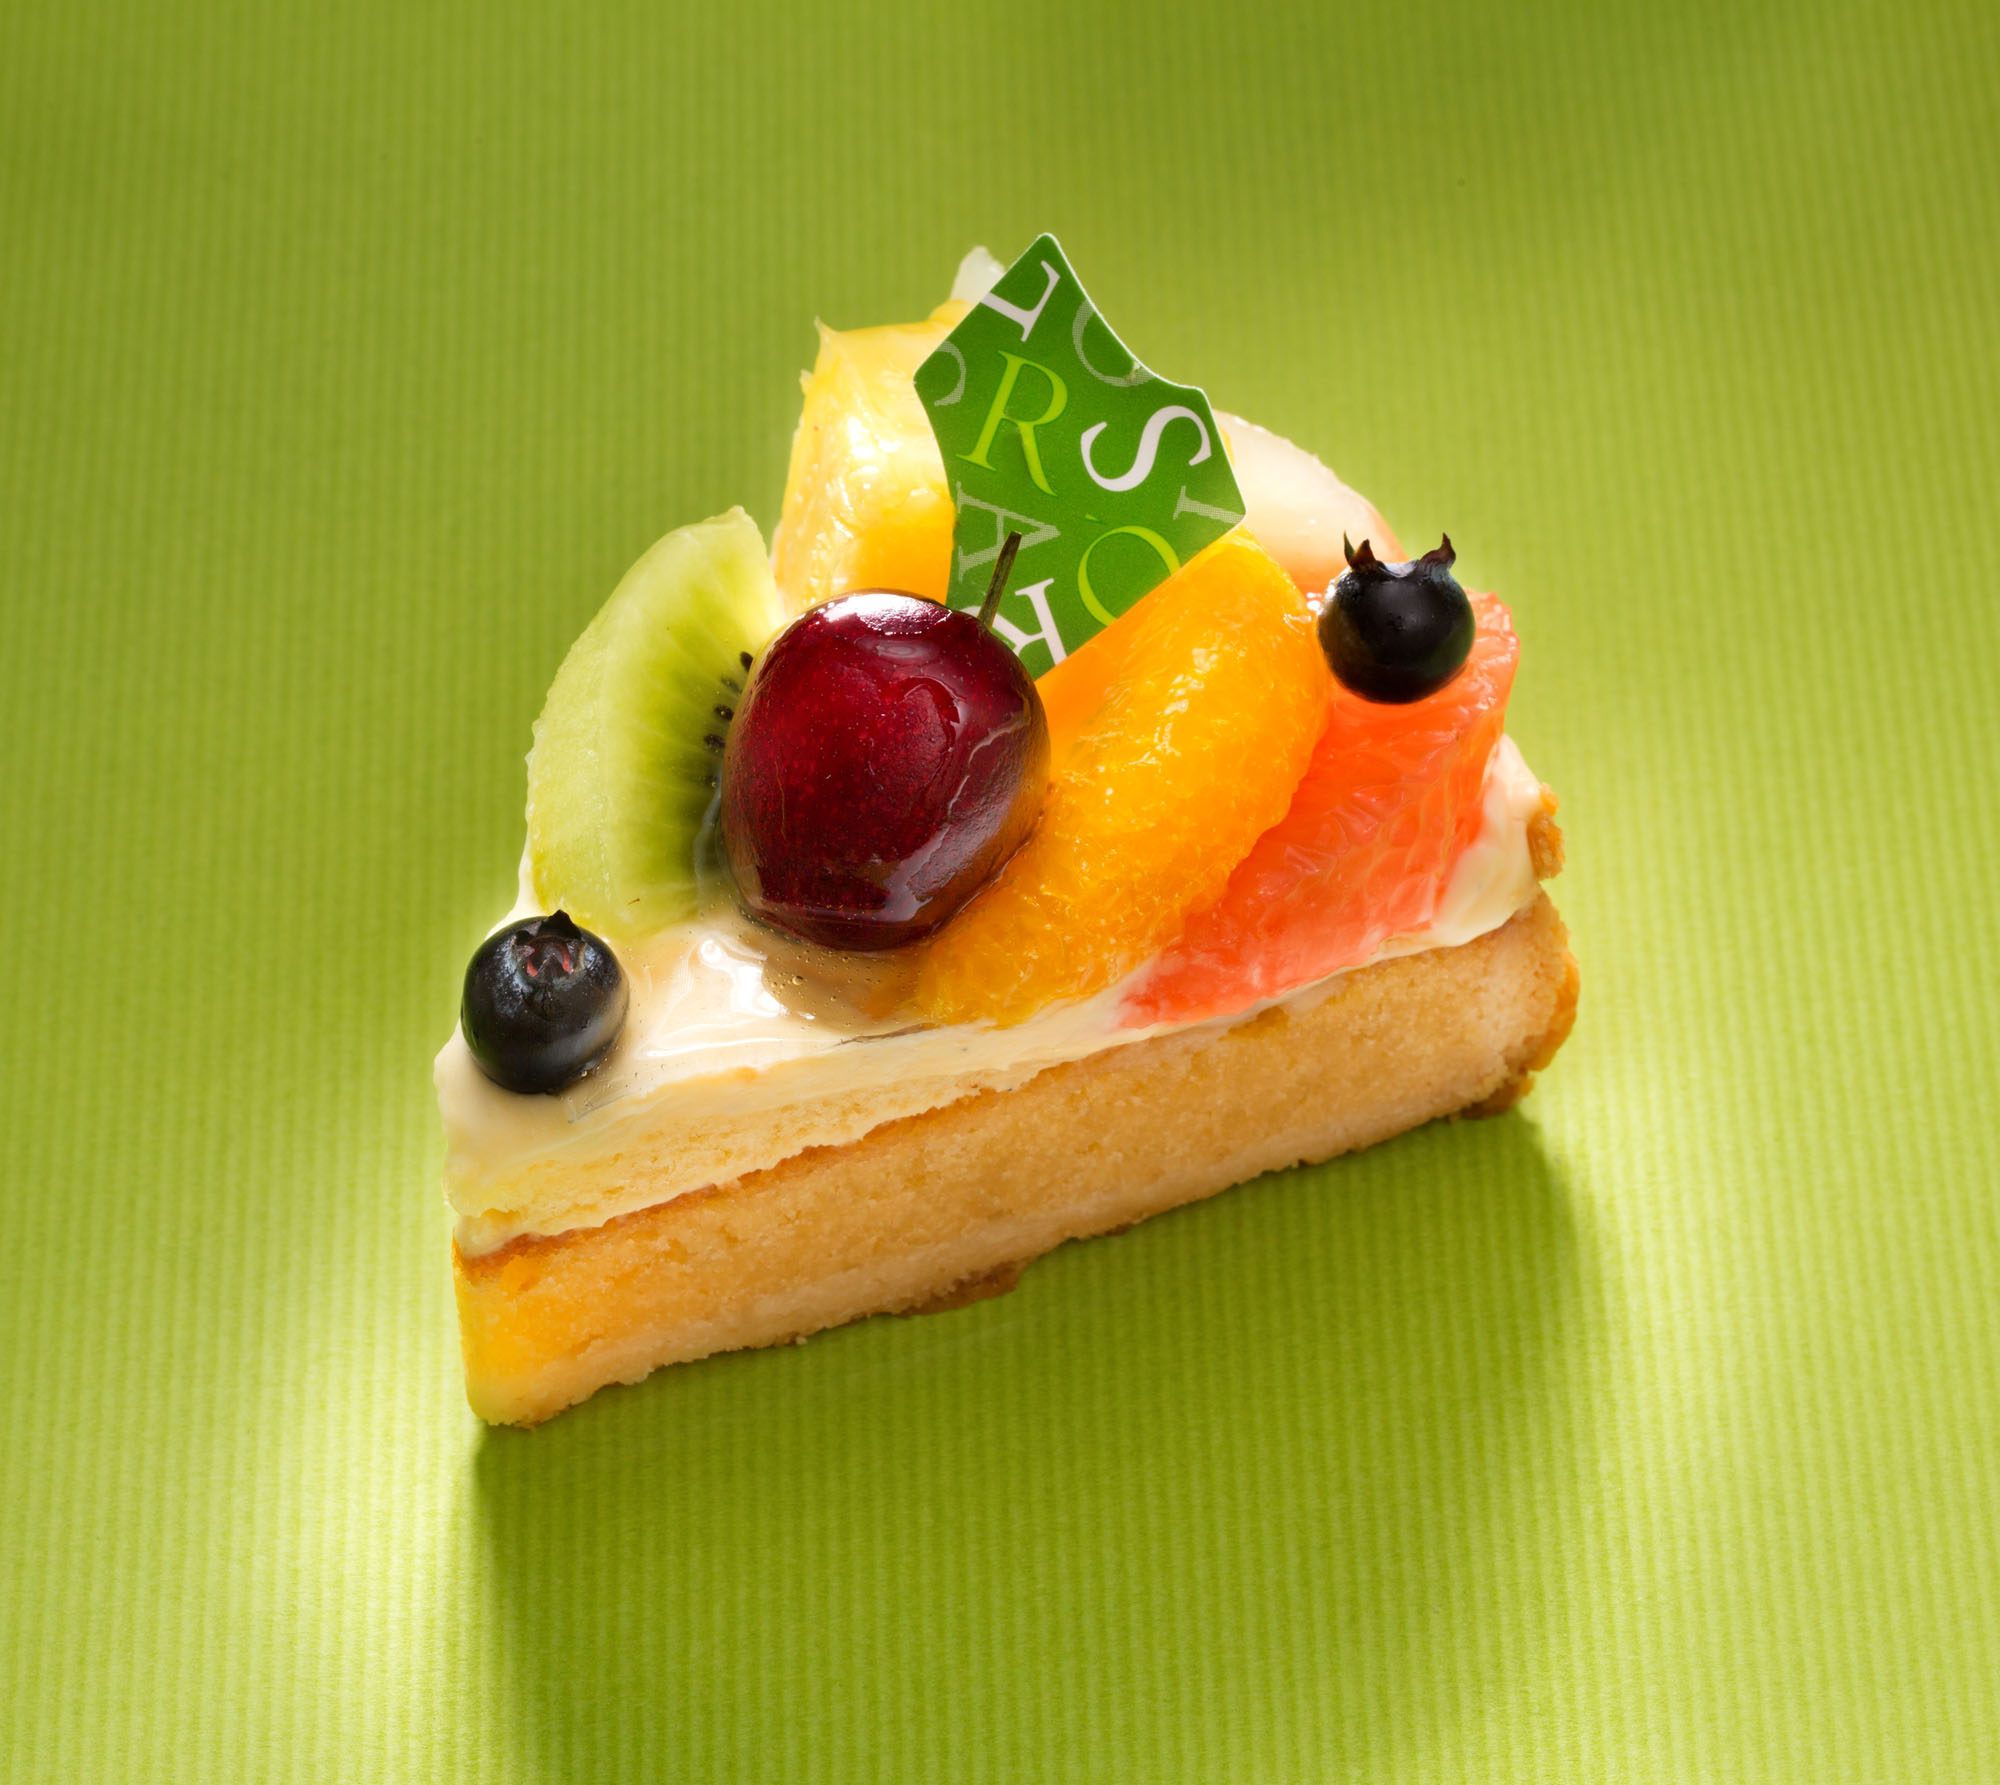 0001300_fruits_tart